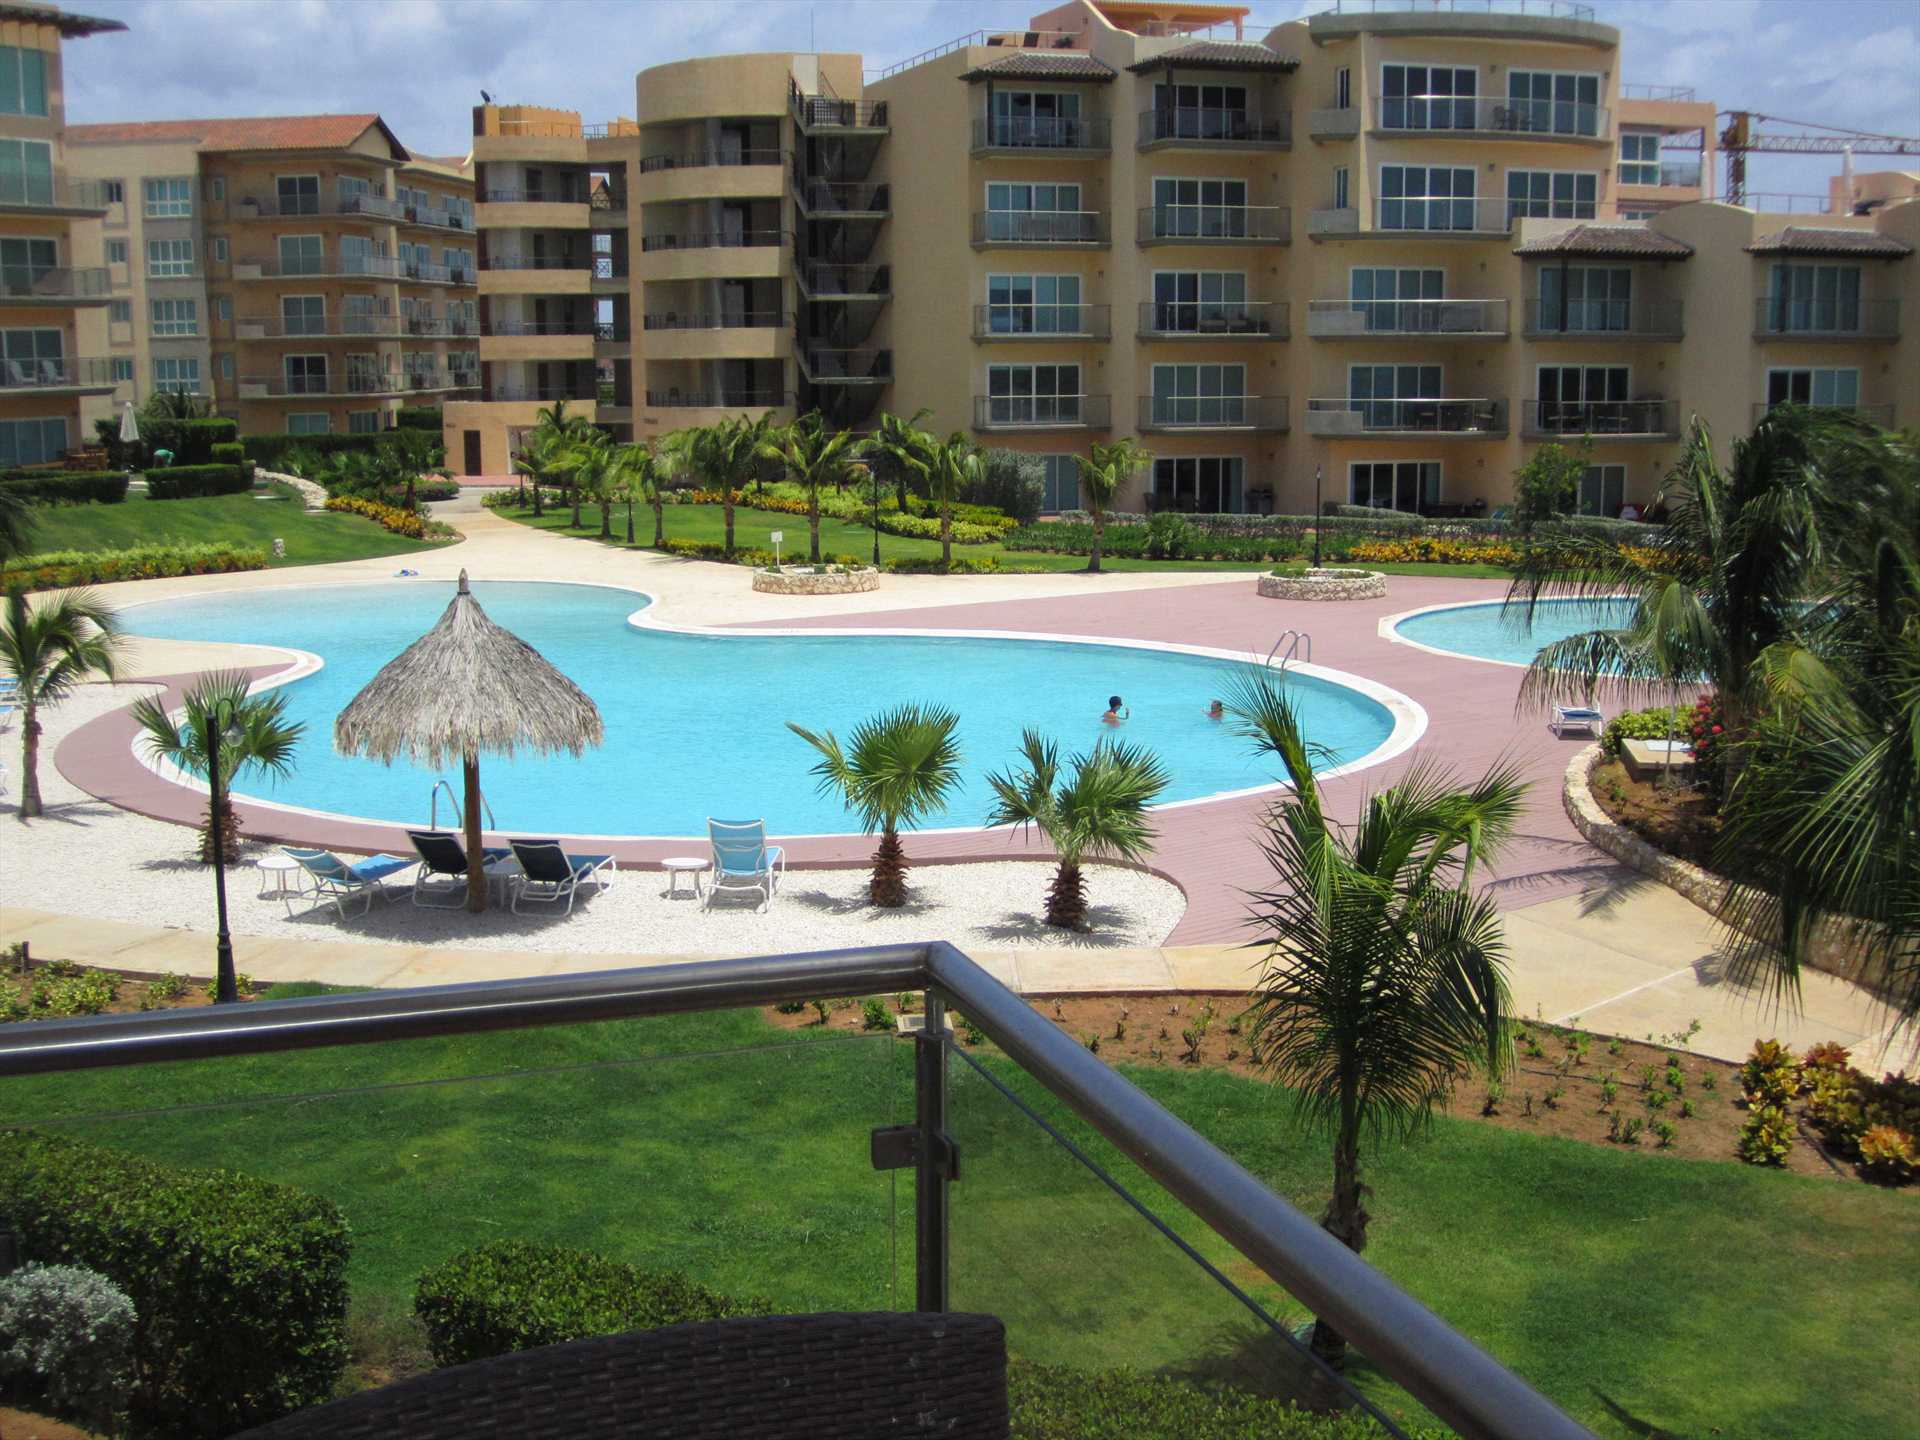 Great views from balconies to the resort's premises.